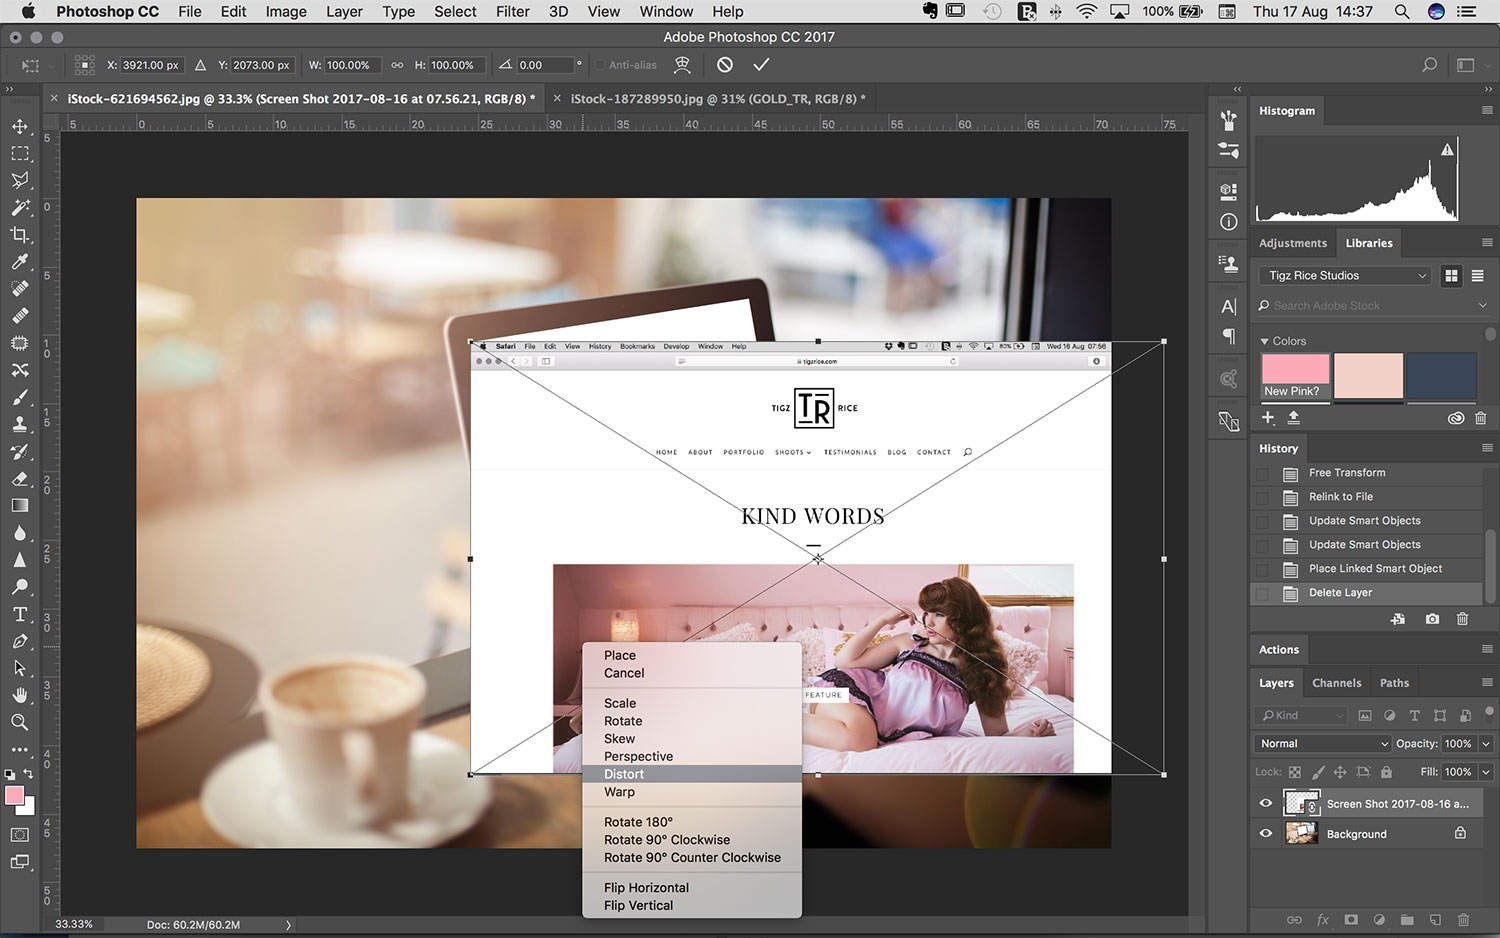 How to make a mockup in Photoshop - Digital Arts